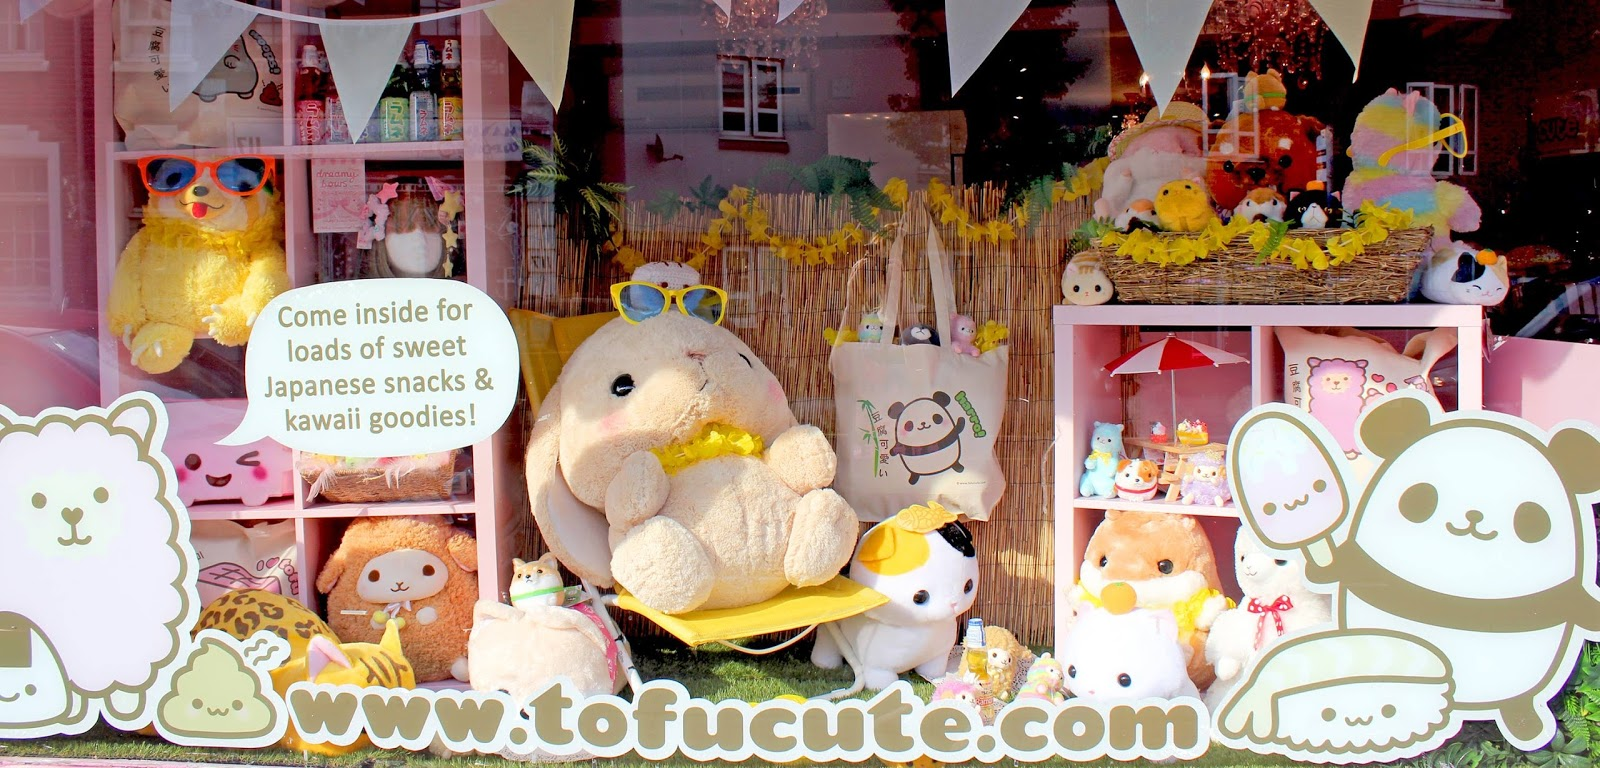 Jfashion store Tofu Cute